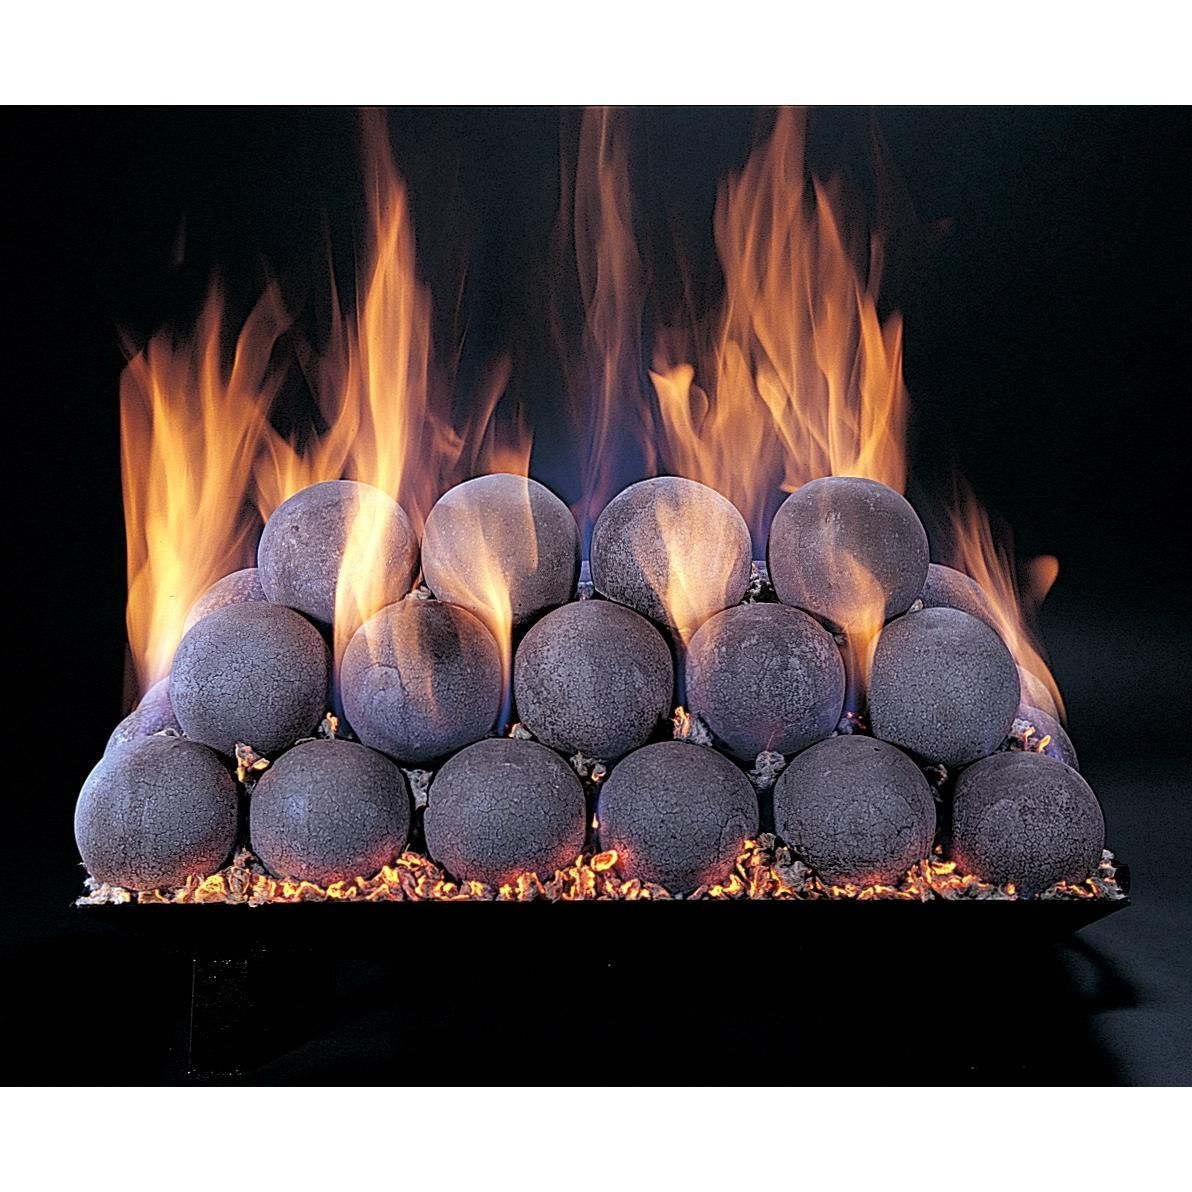 rasmussen 24 inch natural fireball set with vented custom embers